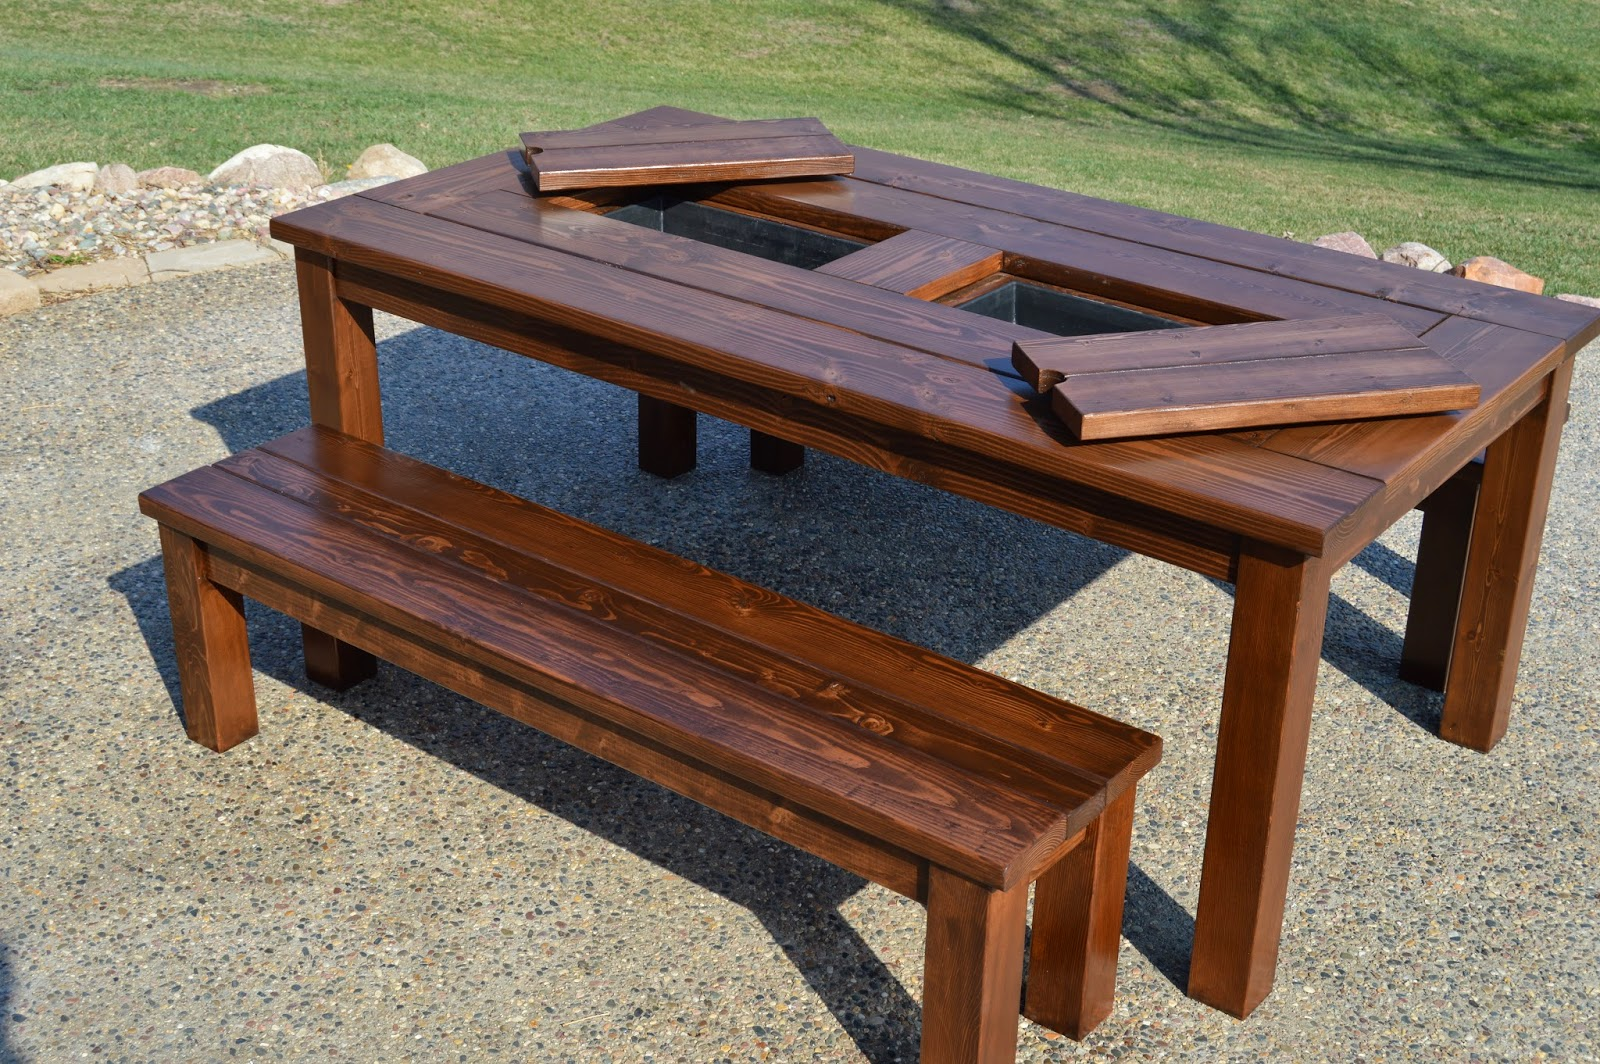 KRUSE'S WORKSHOP: Patio Party Table with Built In Beer/Wine Ice ...